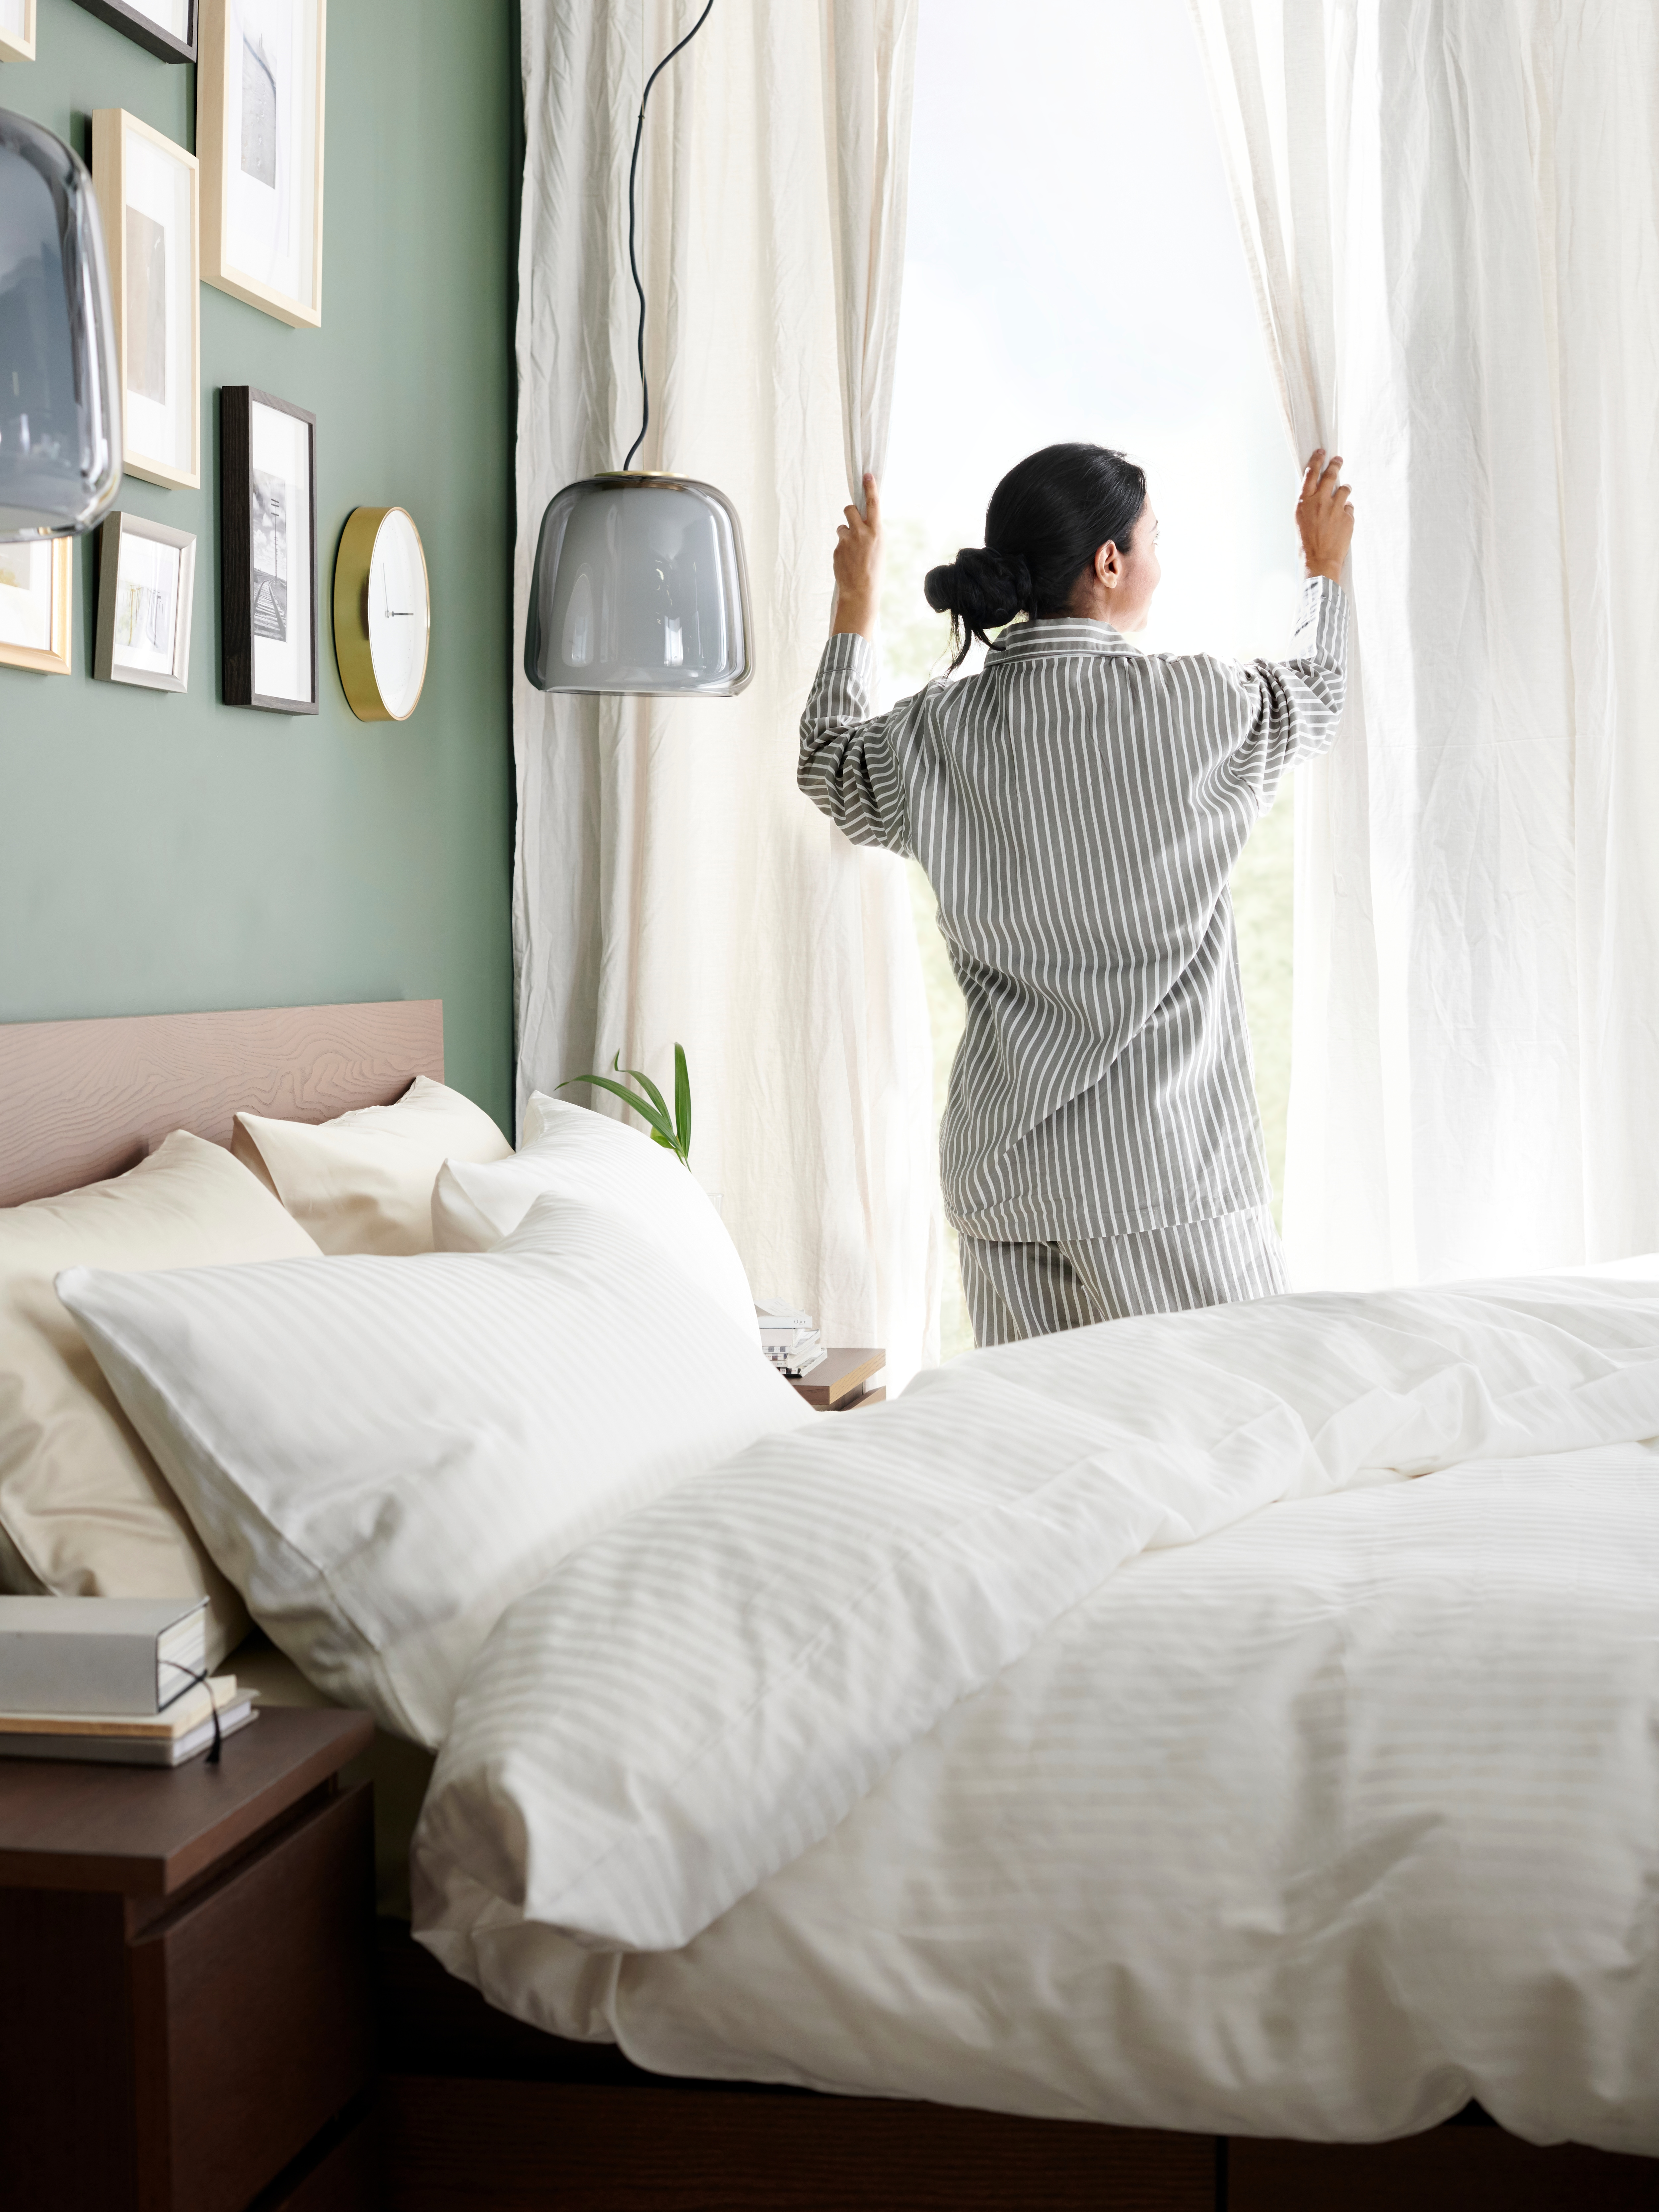 A woman in striped pyjamas opening curtains behind a MALM bed, made up with NATTJASMIN bed linens.